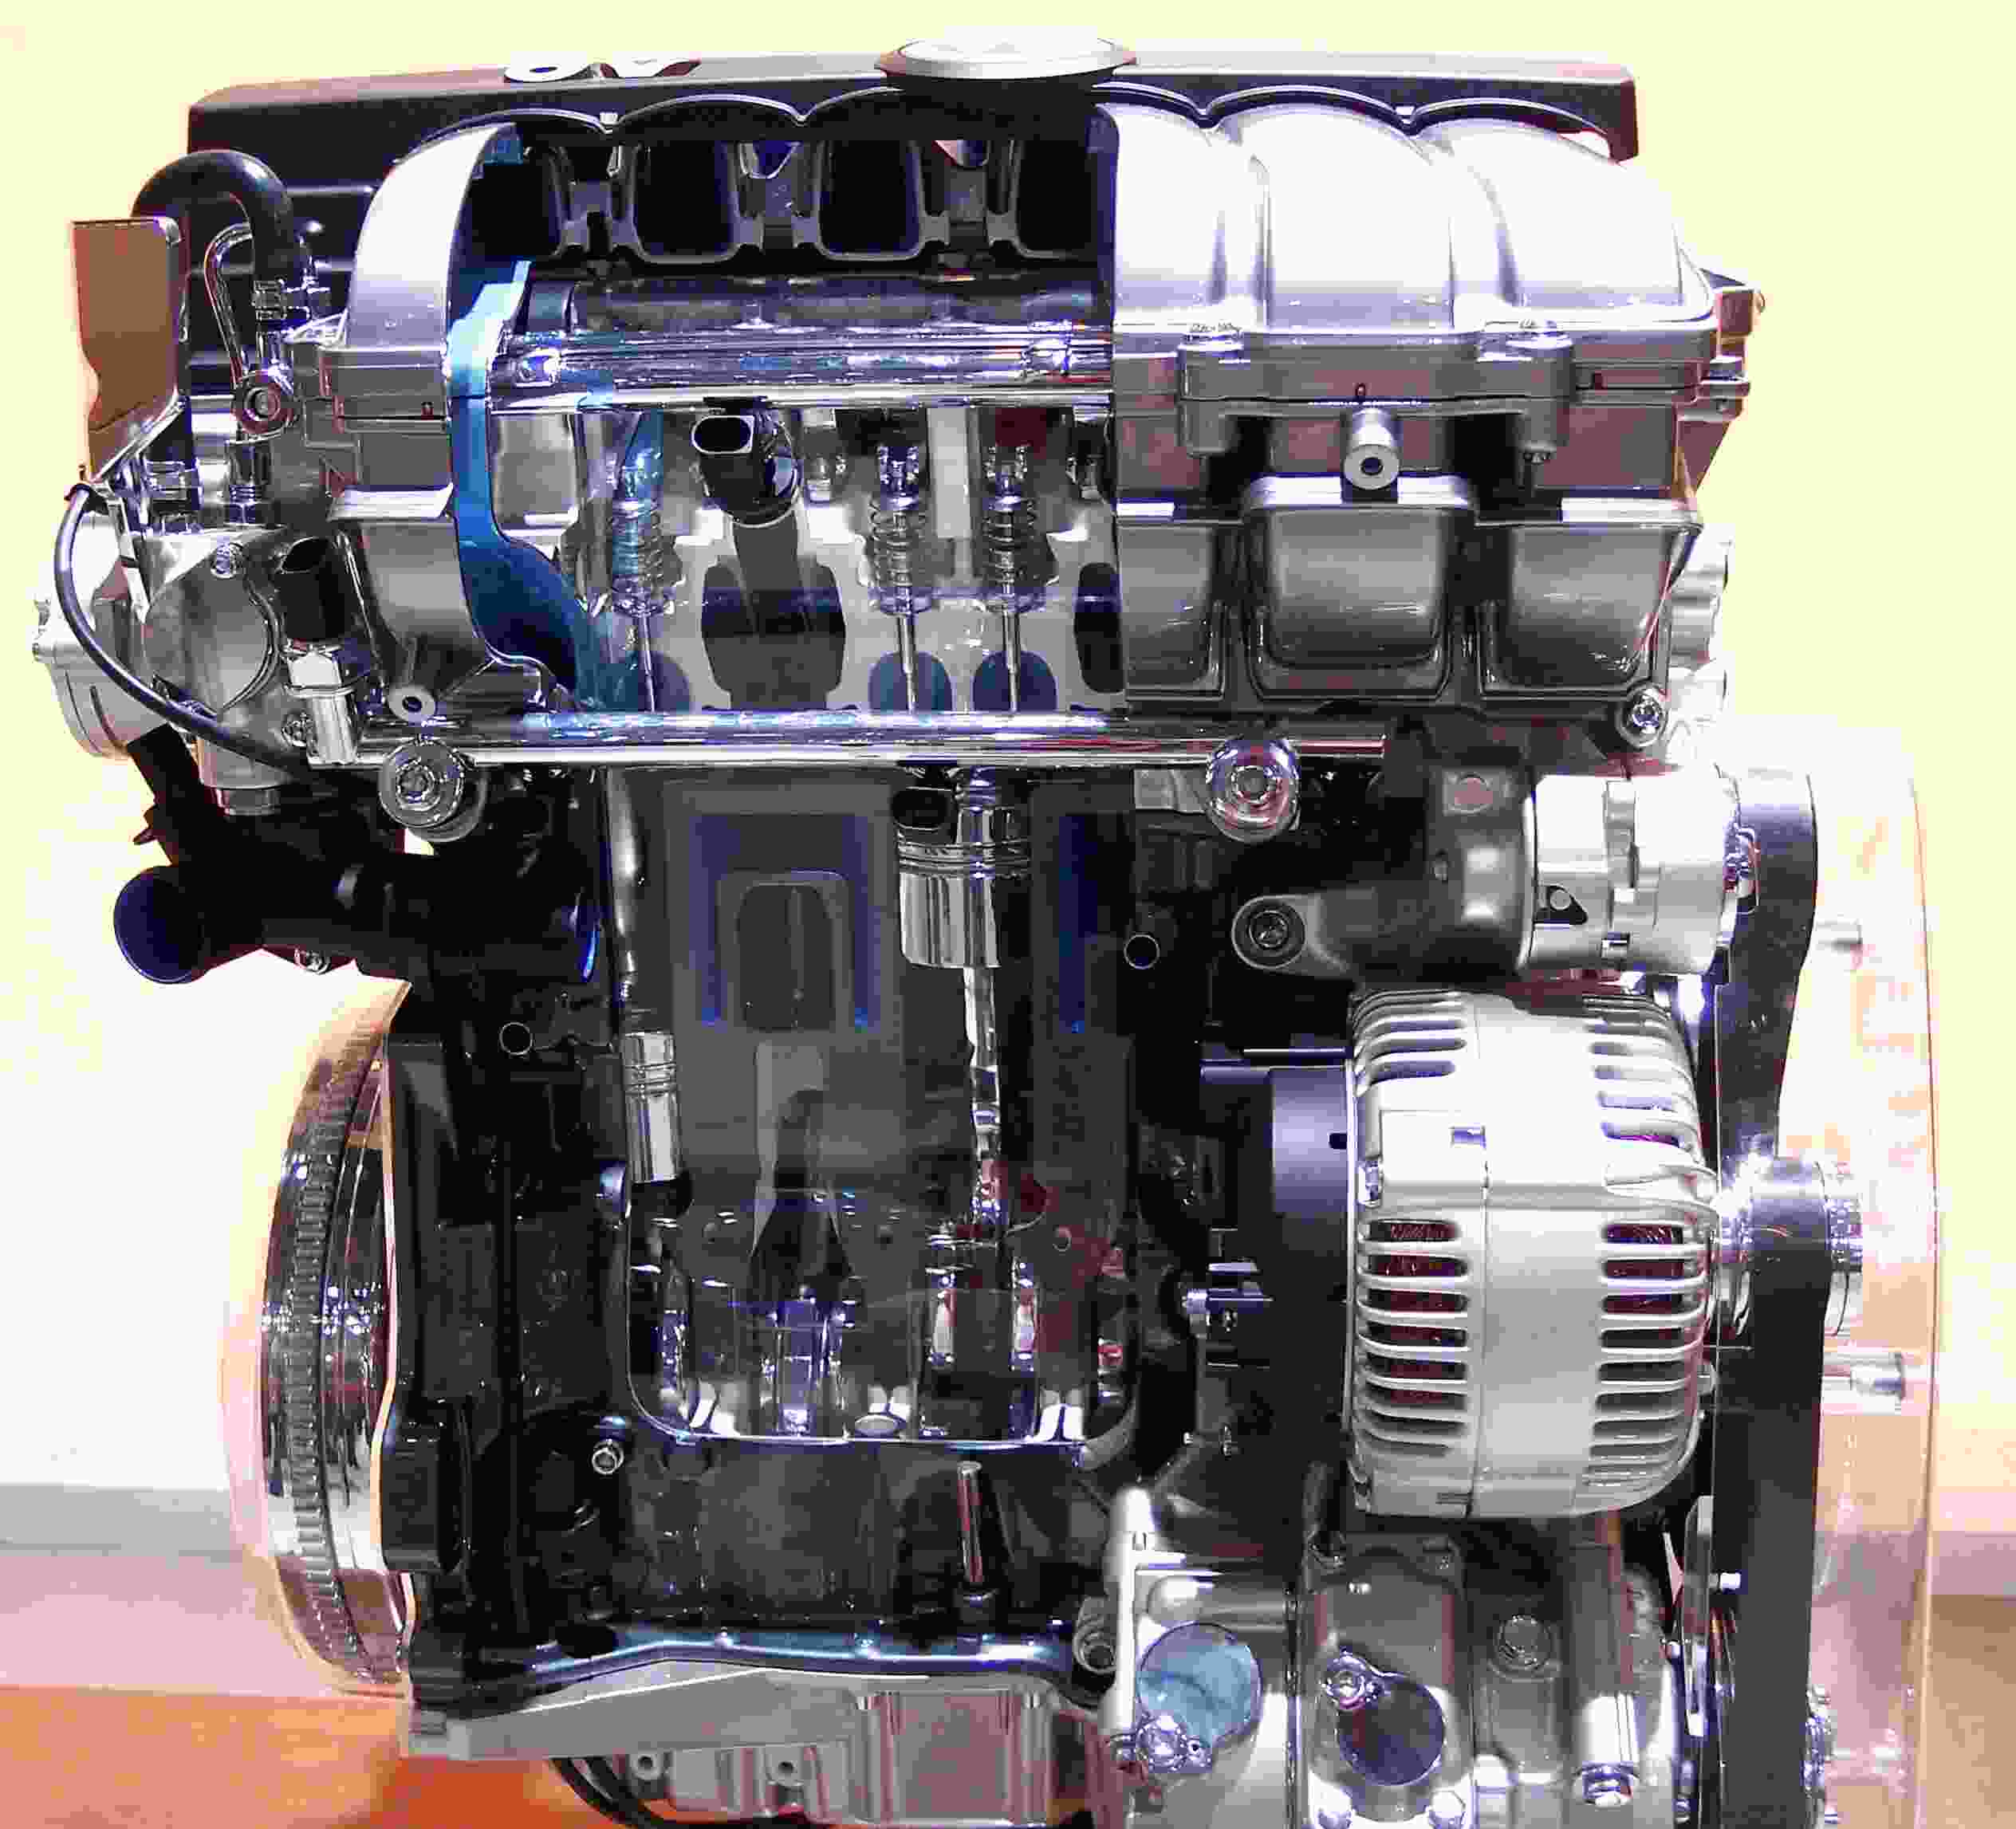 r36 engine for sale